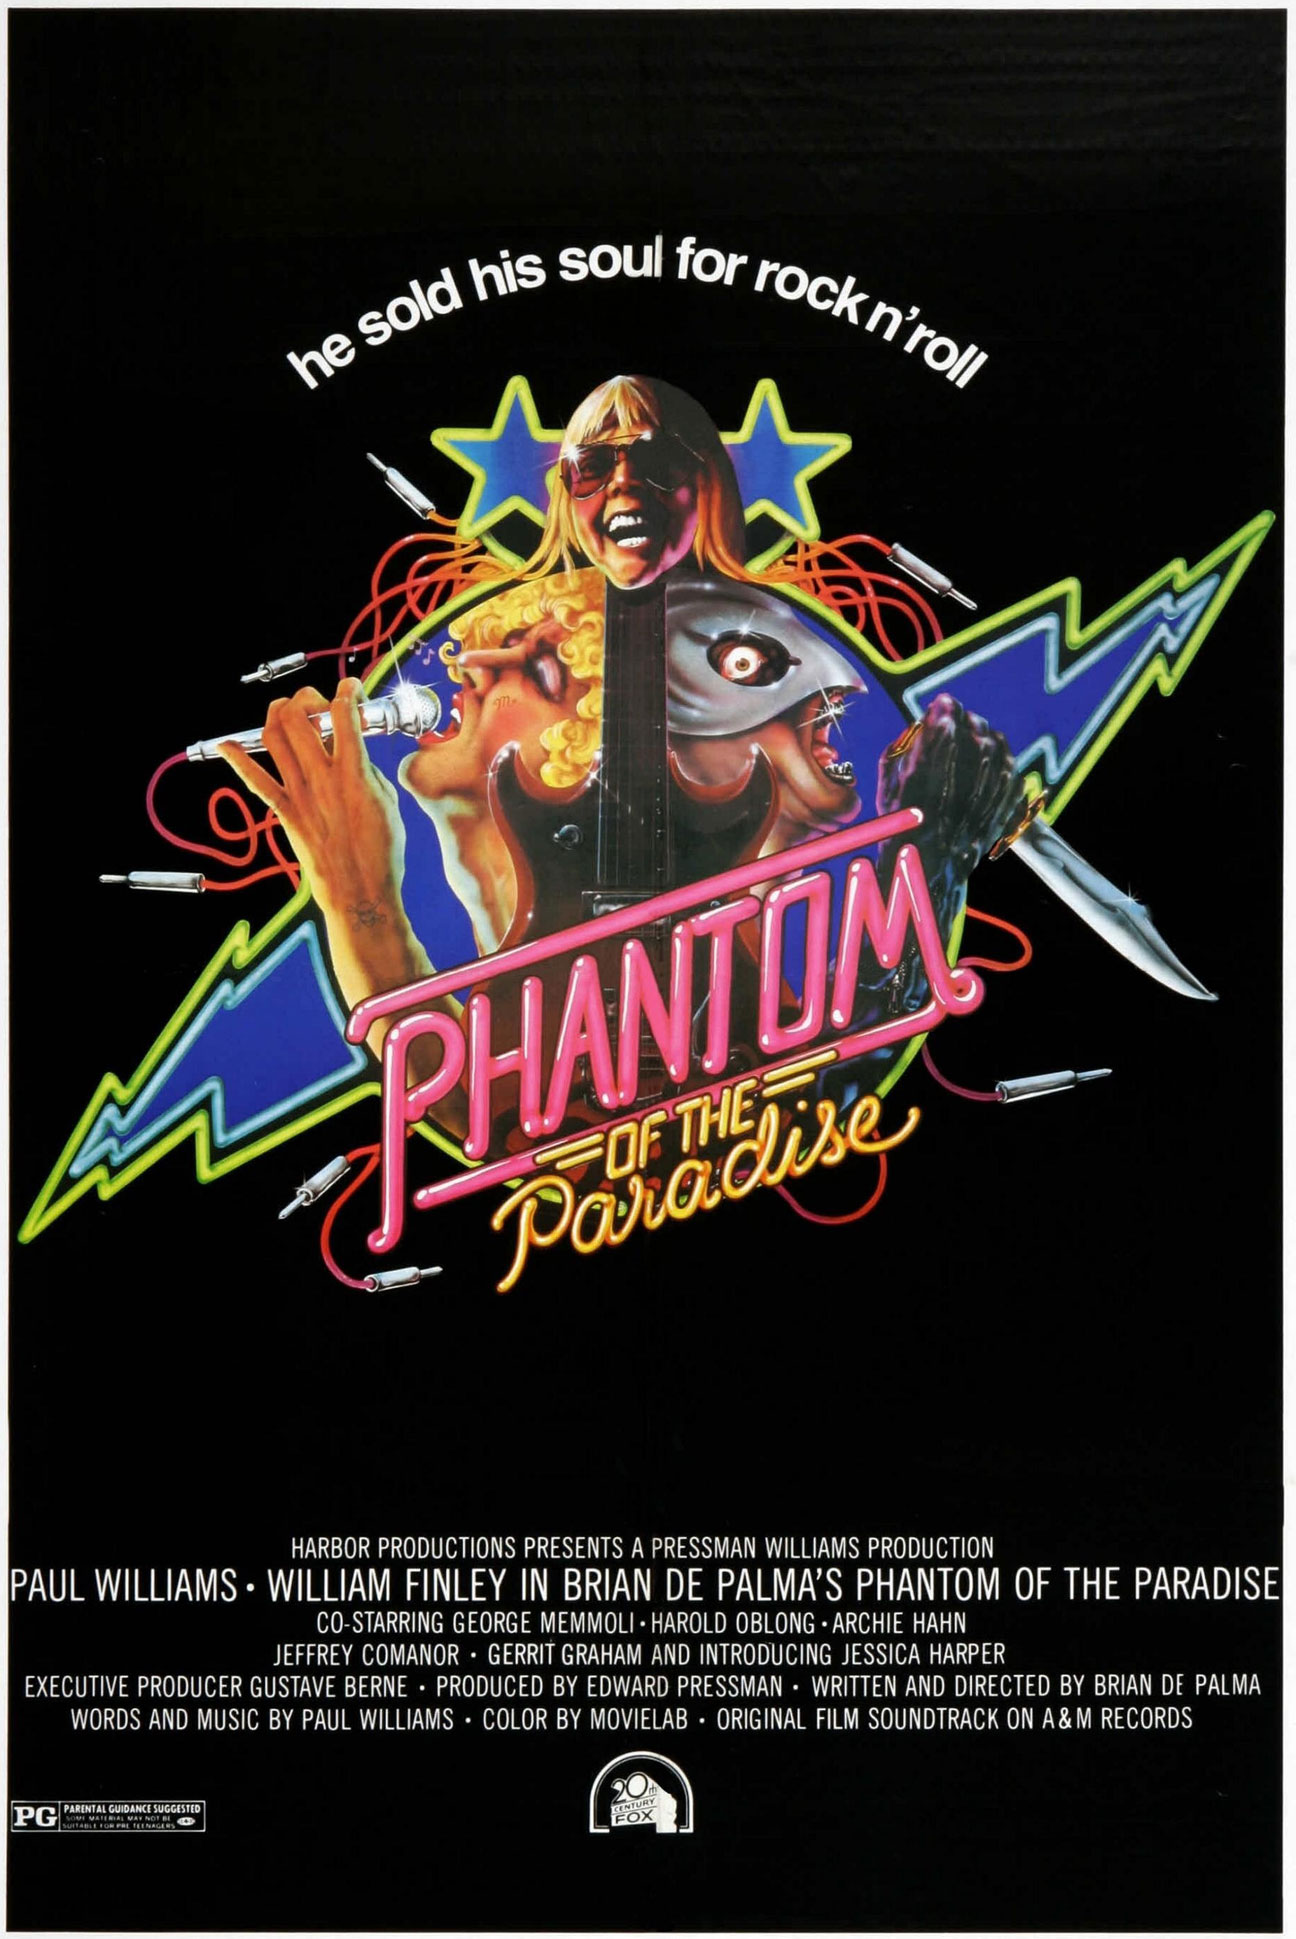 https://cameravisceradotcom.files.wordpress.com/2016/05/phantom-of-the-paradise-poster.jpg